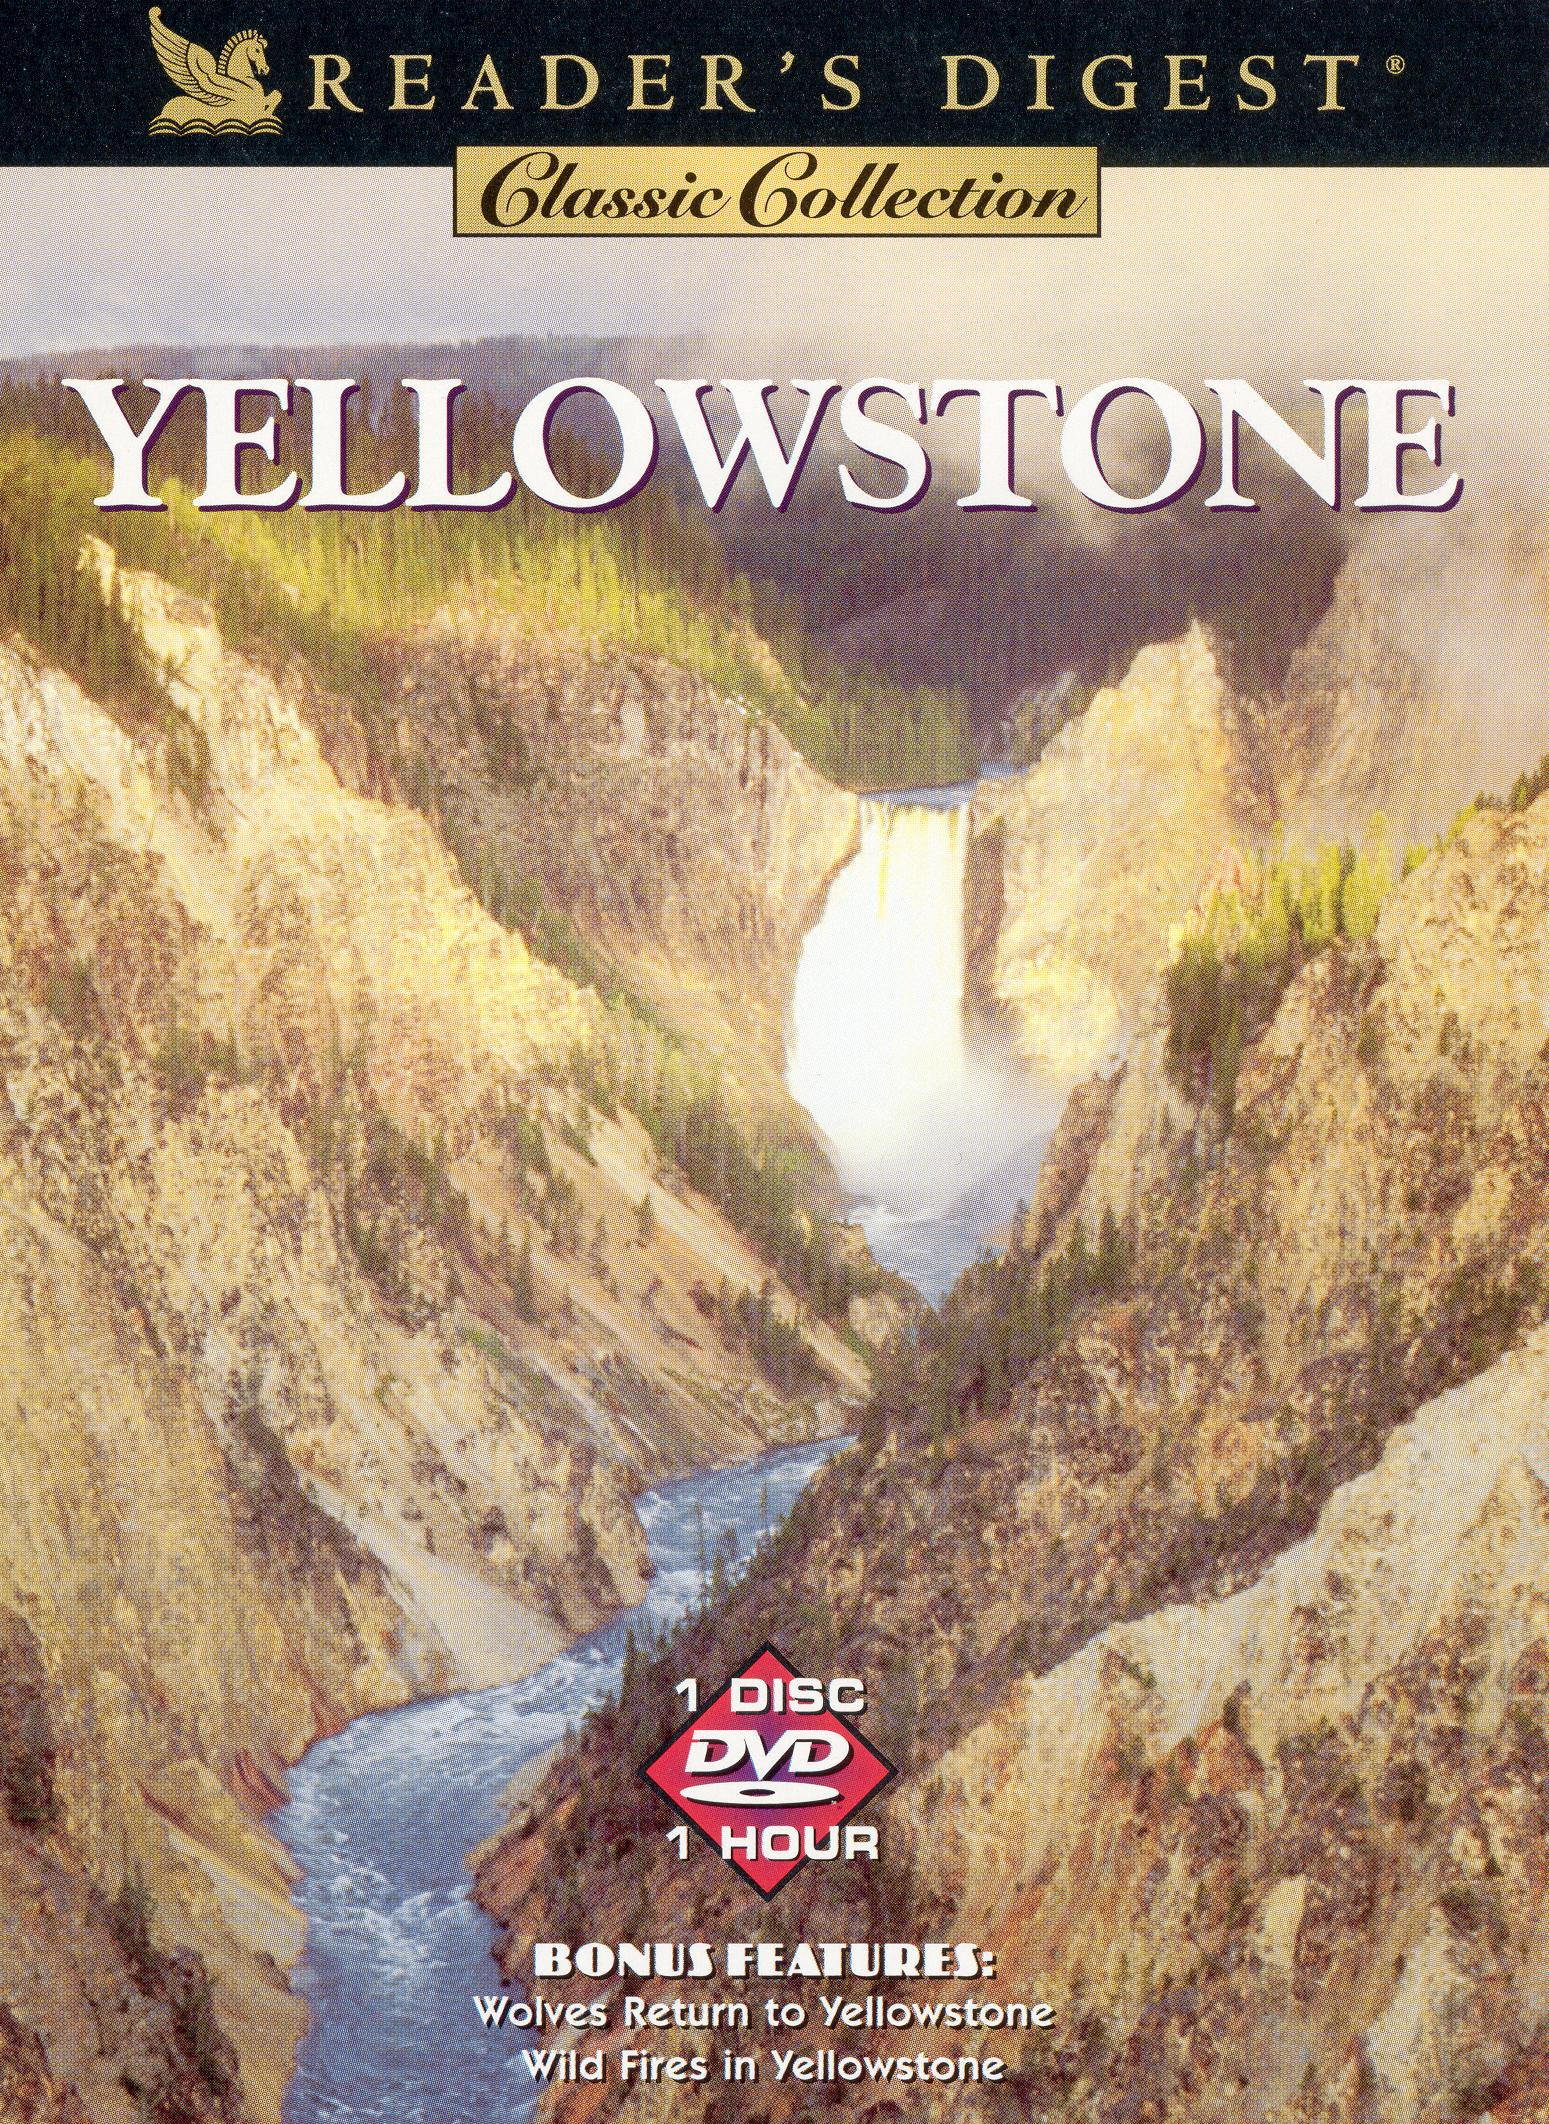 Reader's Digest: Yellowstone - The First National Park